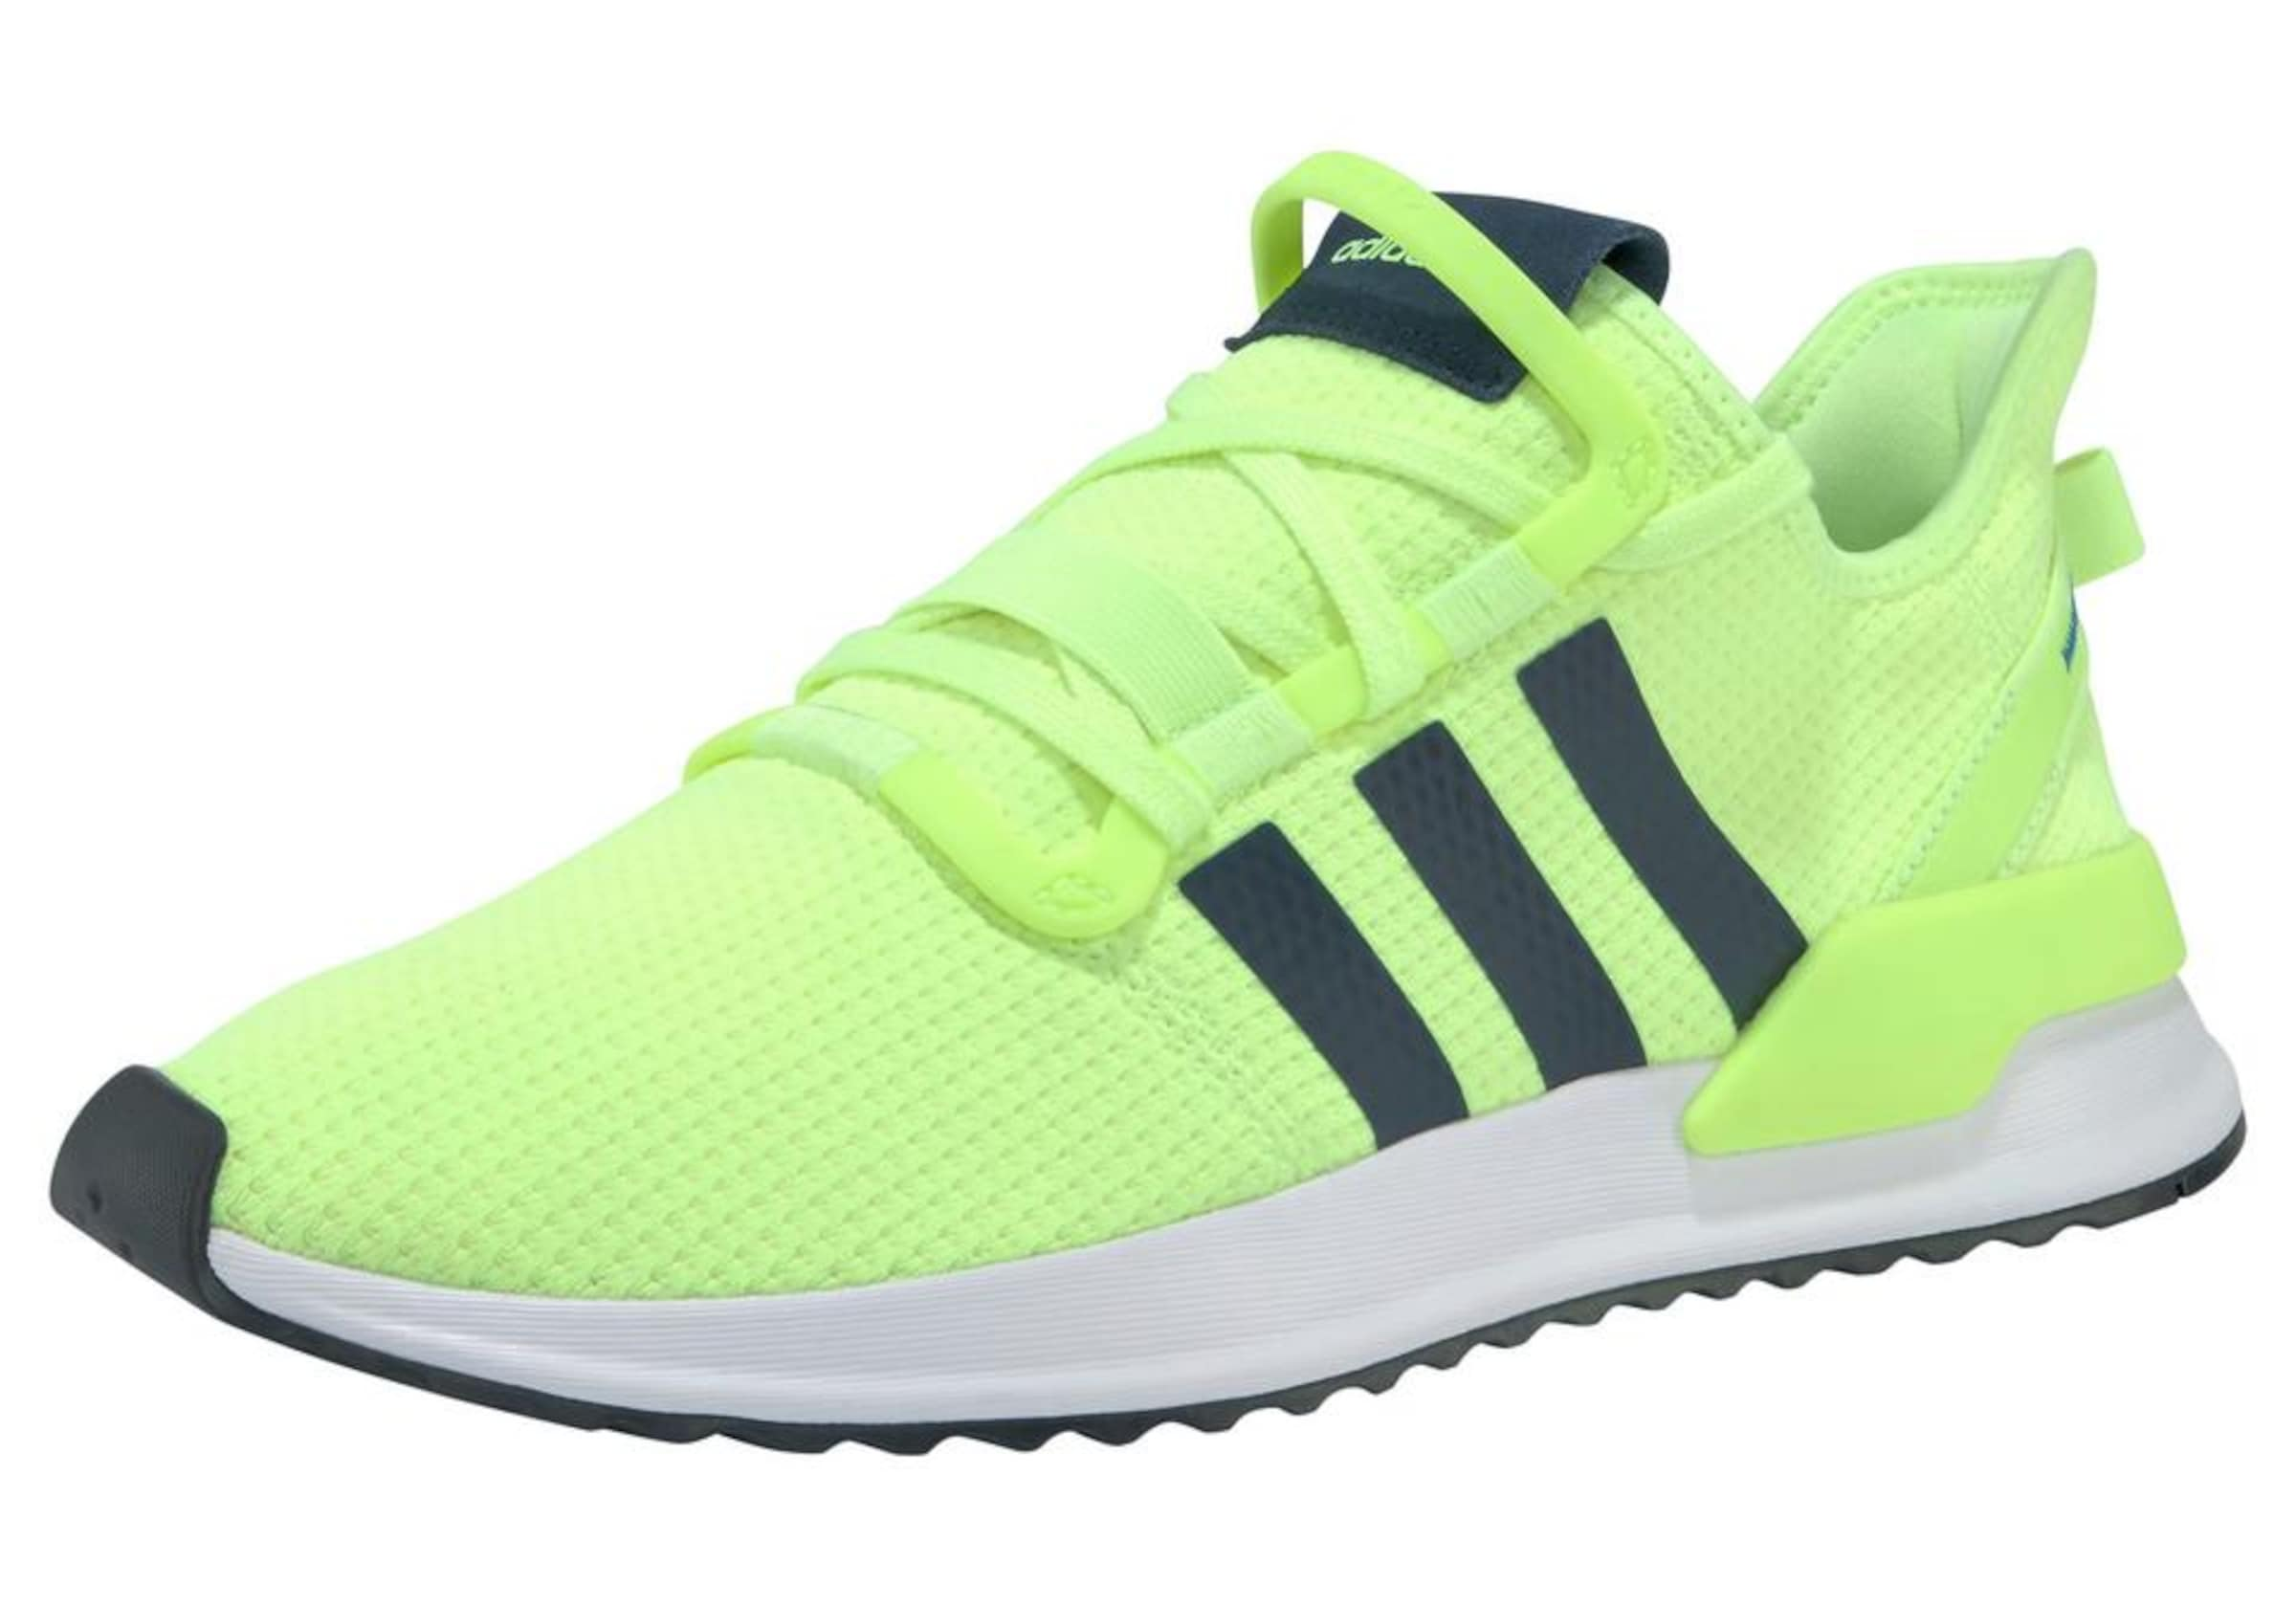 Run' Originals In Adidas Sneaker 'u SchwarzWeiß path SUqVGzLMp